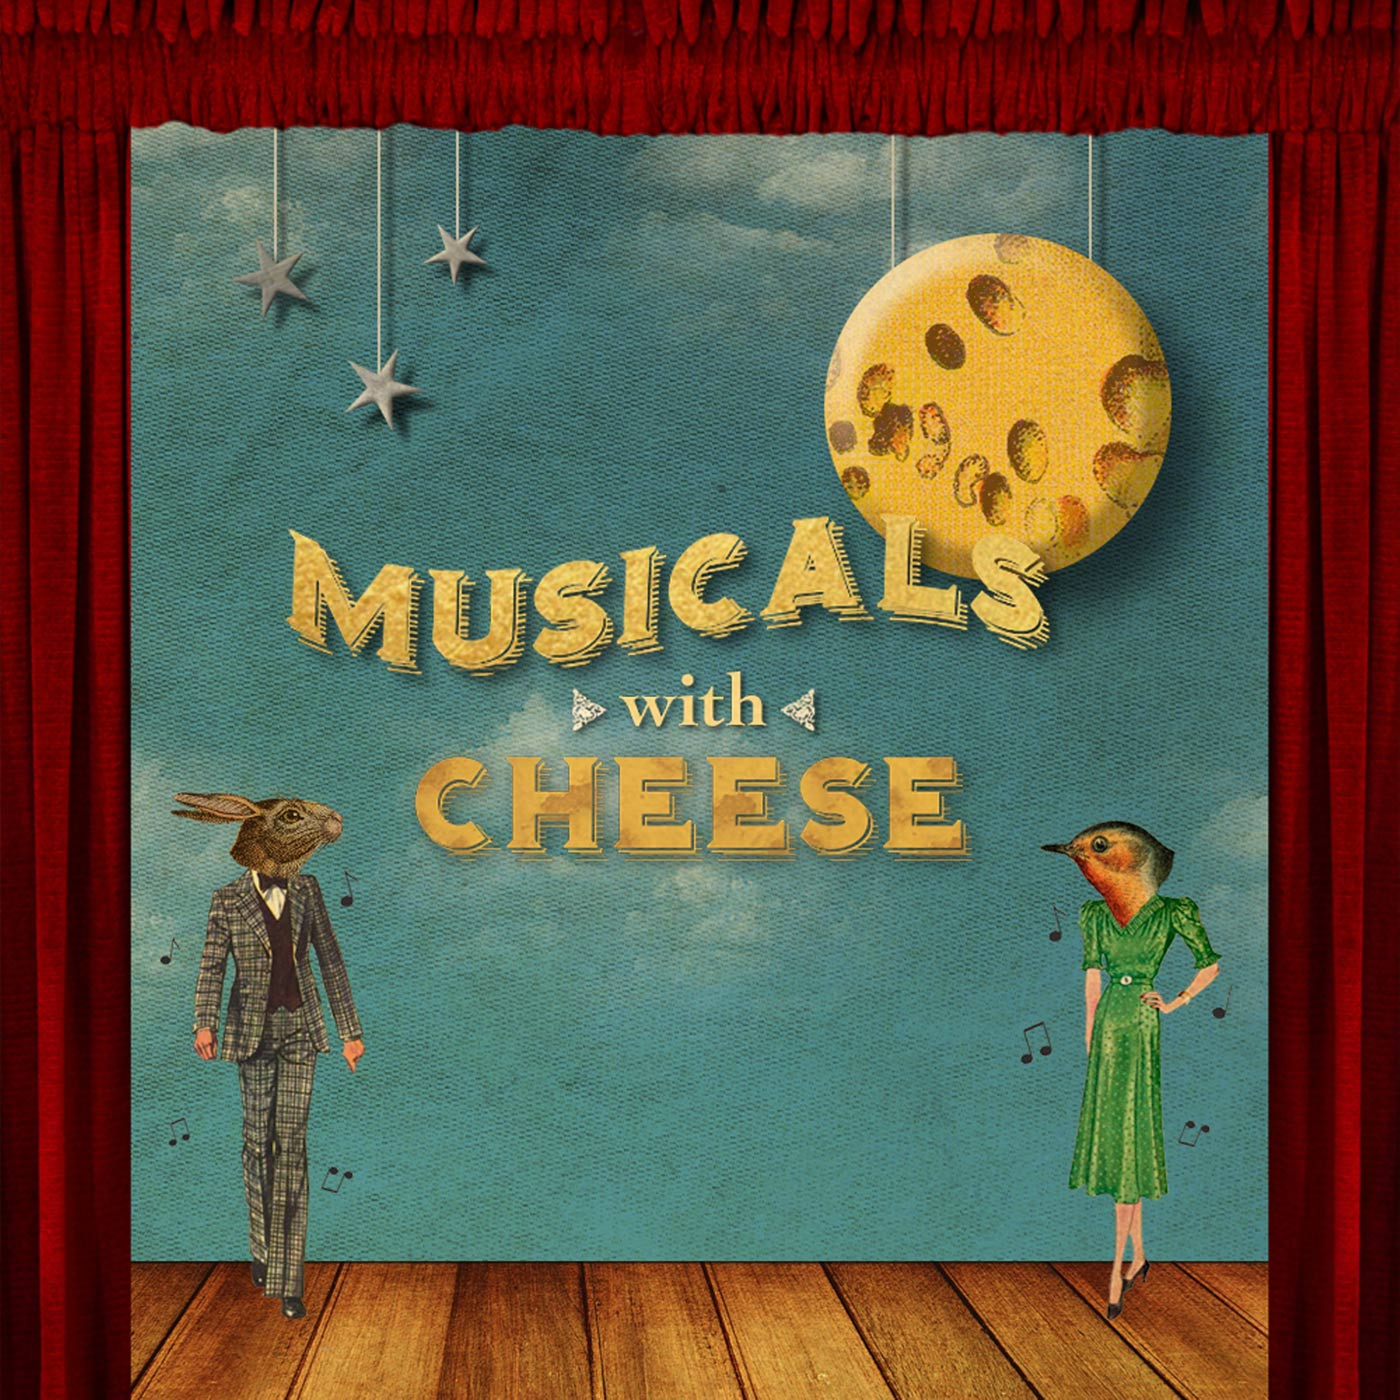 Musicals with Cheese